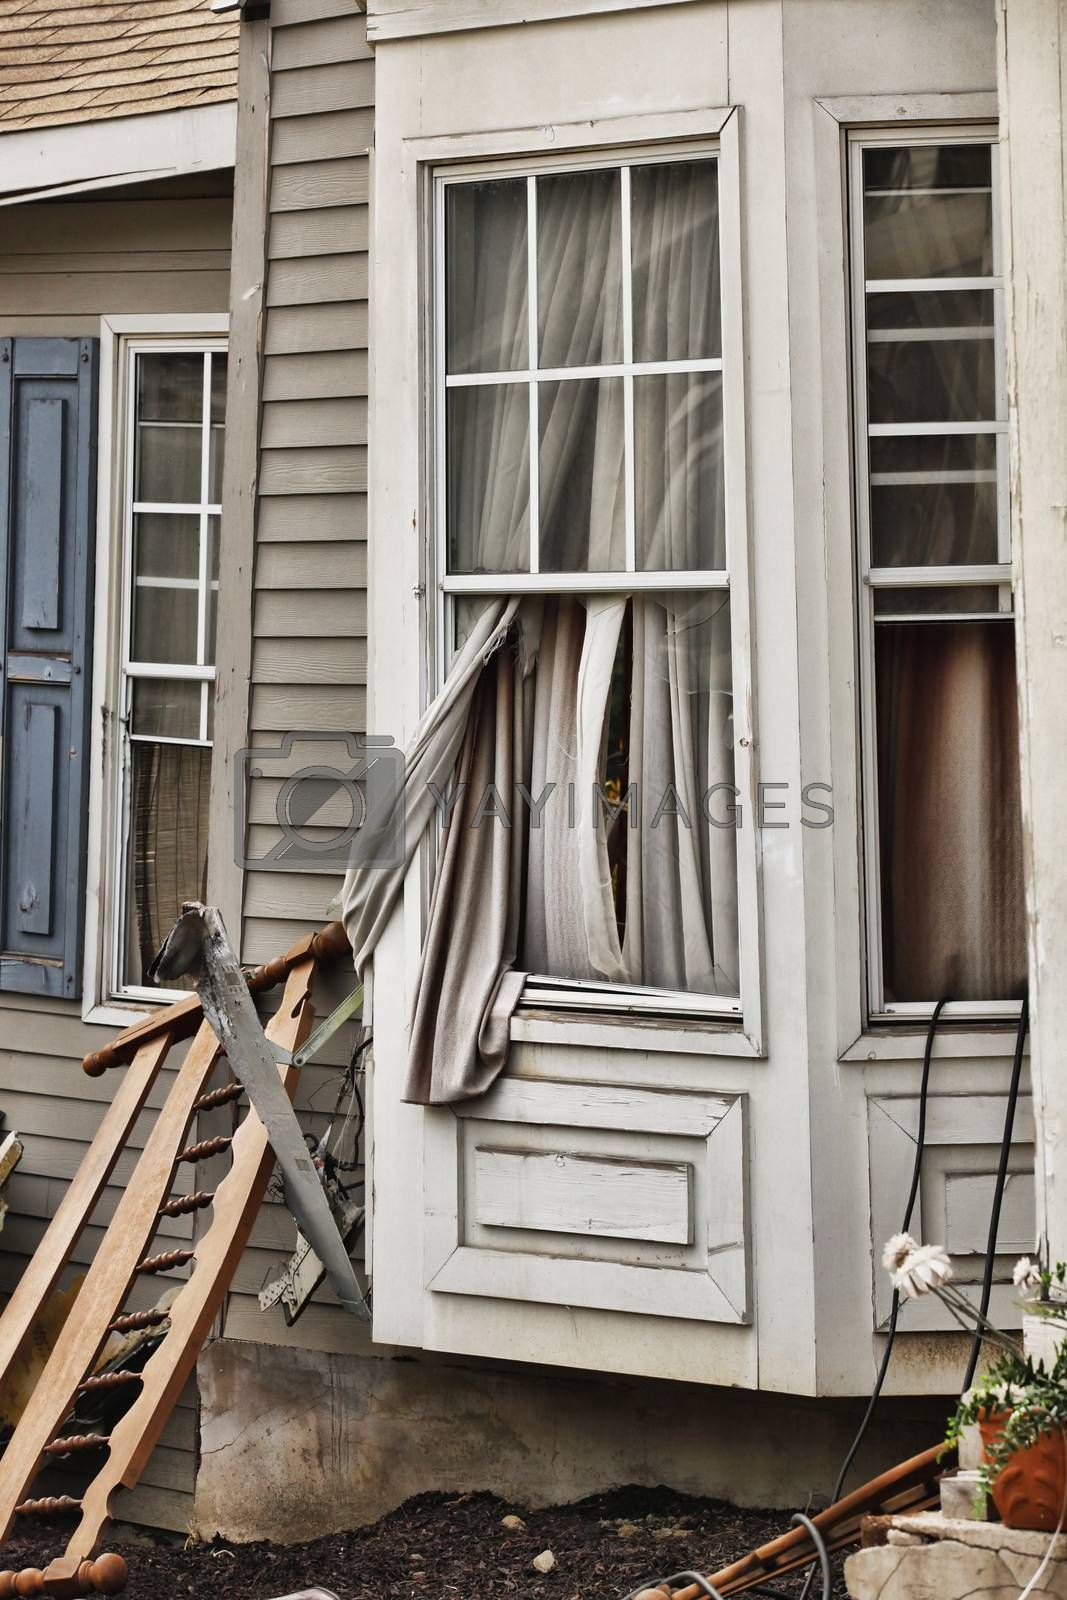 Wooden house damaged by disaster.